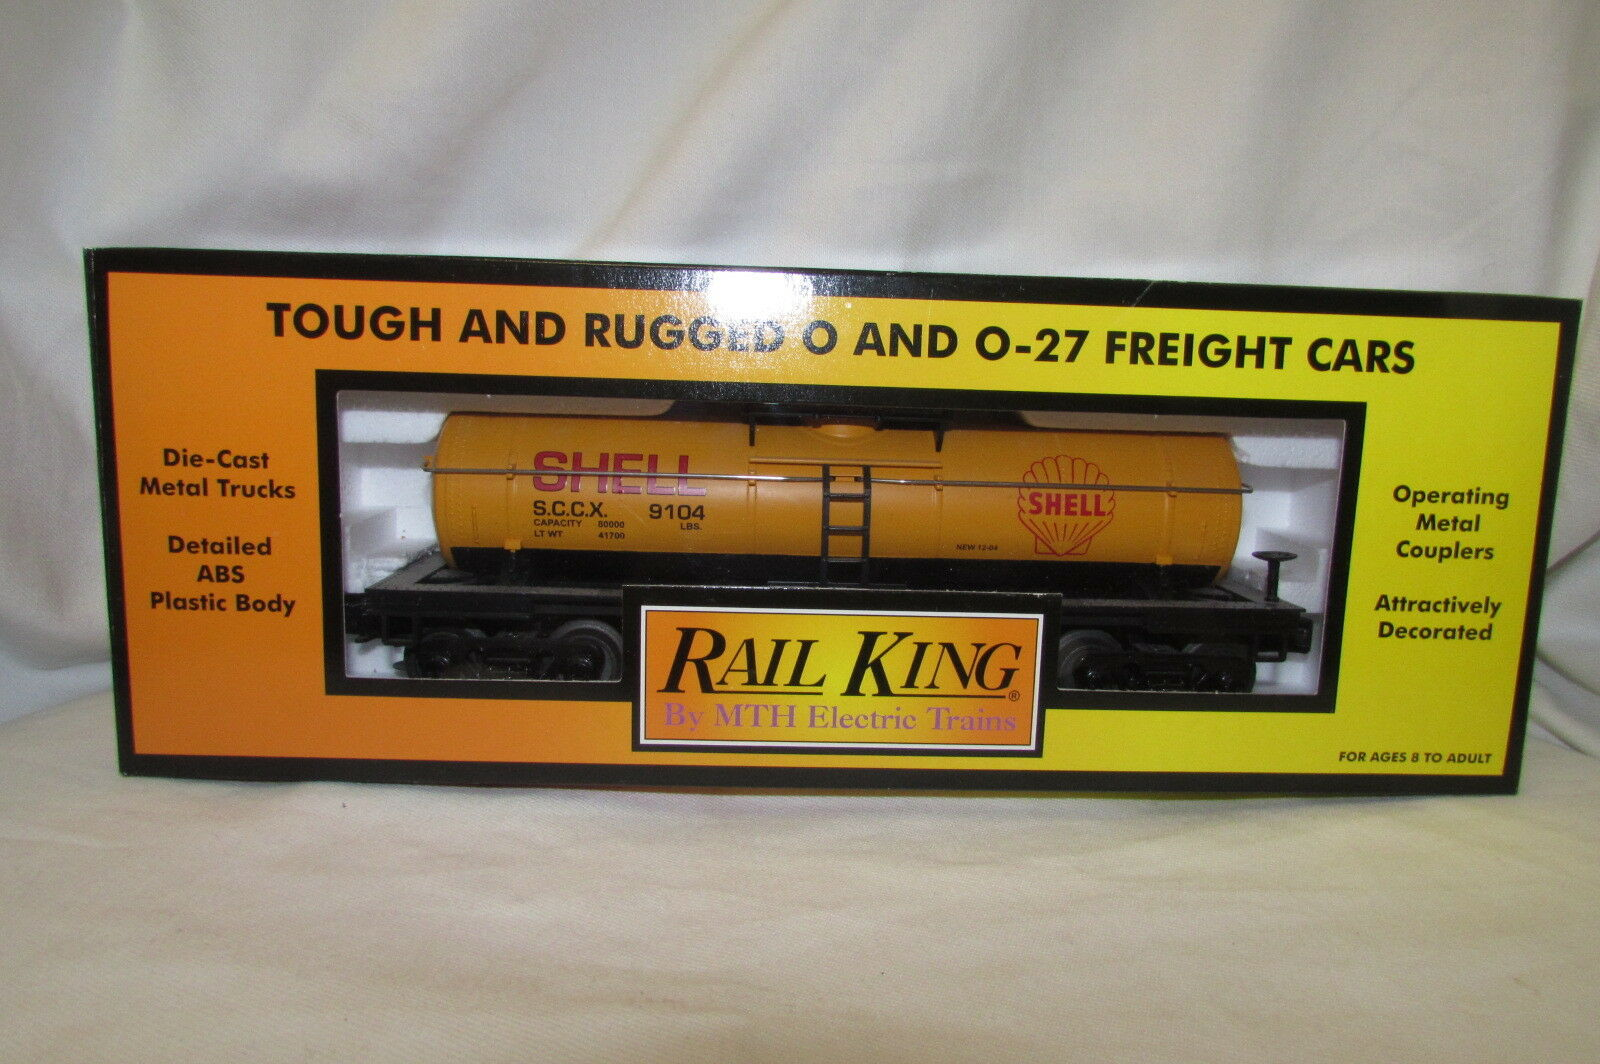 Bärenland Onlineshop Rail King M T H Electric Shell Fuel Tanker Tank Car In Box 30